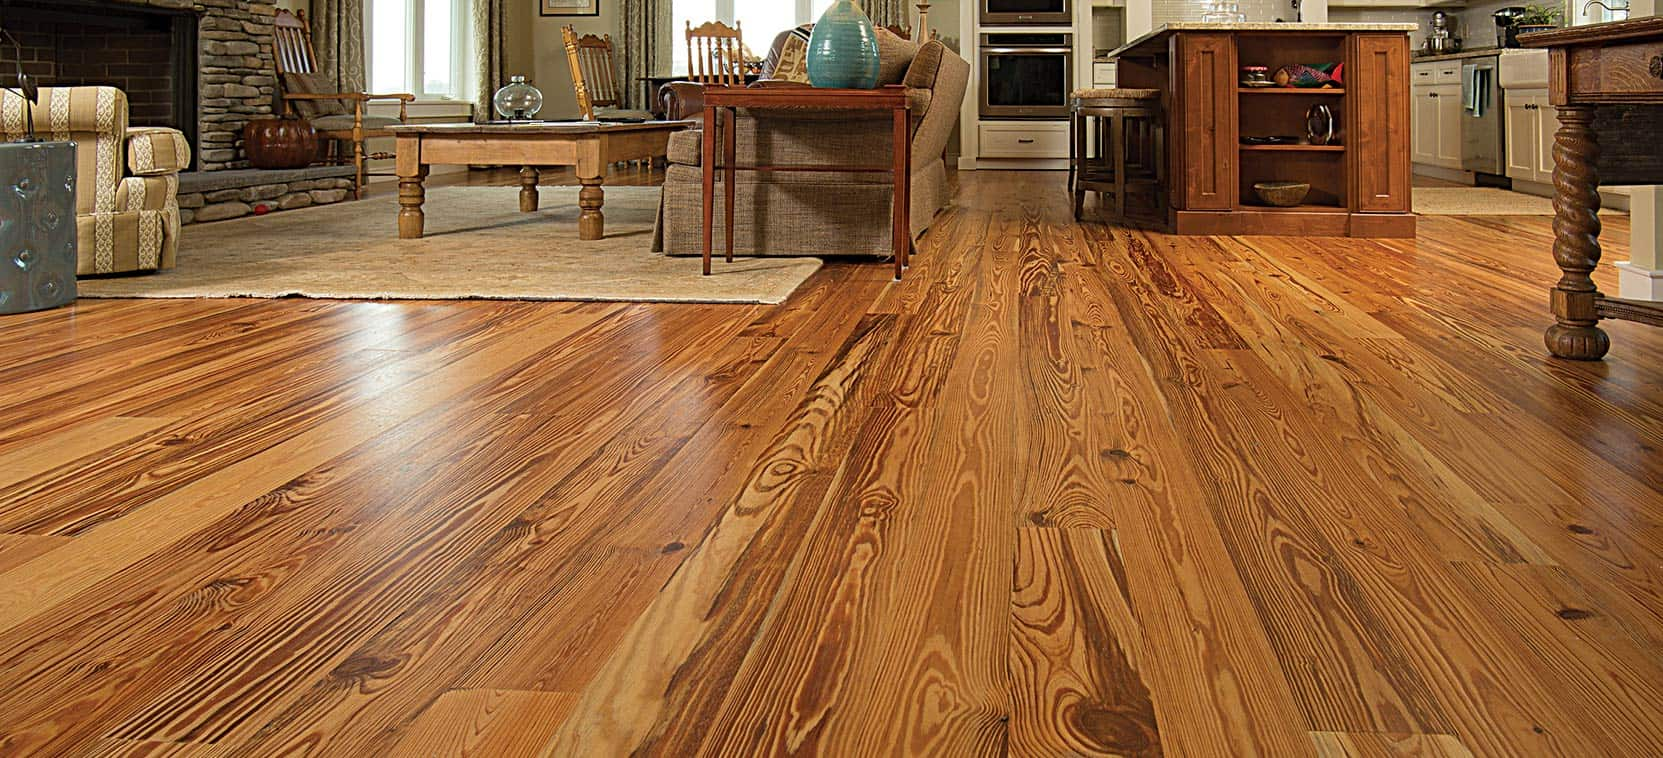 Heart Pine Reclaimed Wood Flooring Goodwin Company